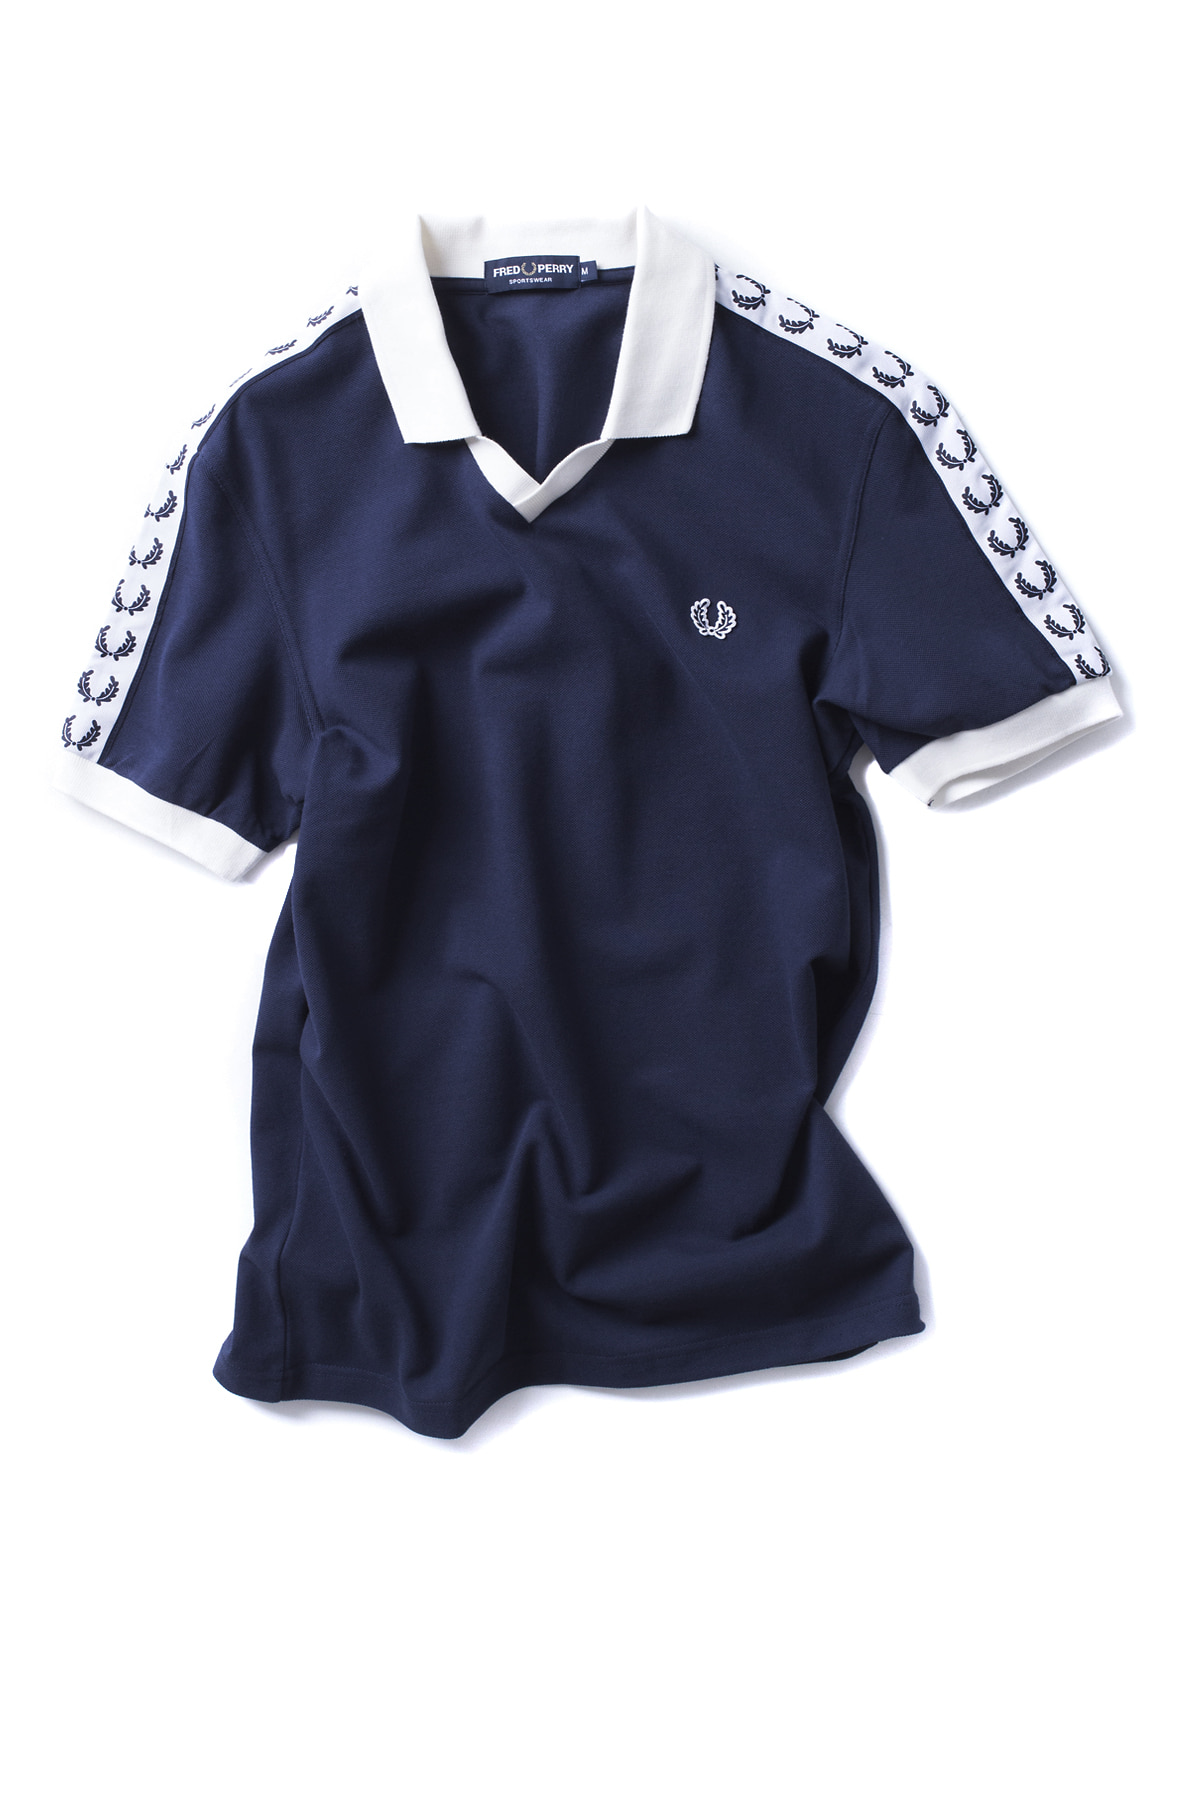 FRED PERRY : Taped Pique Shirt (Carbon Blue)